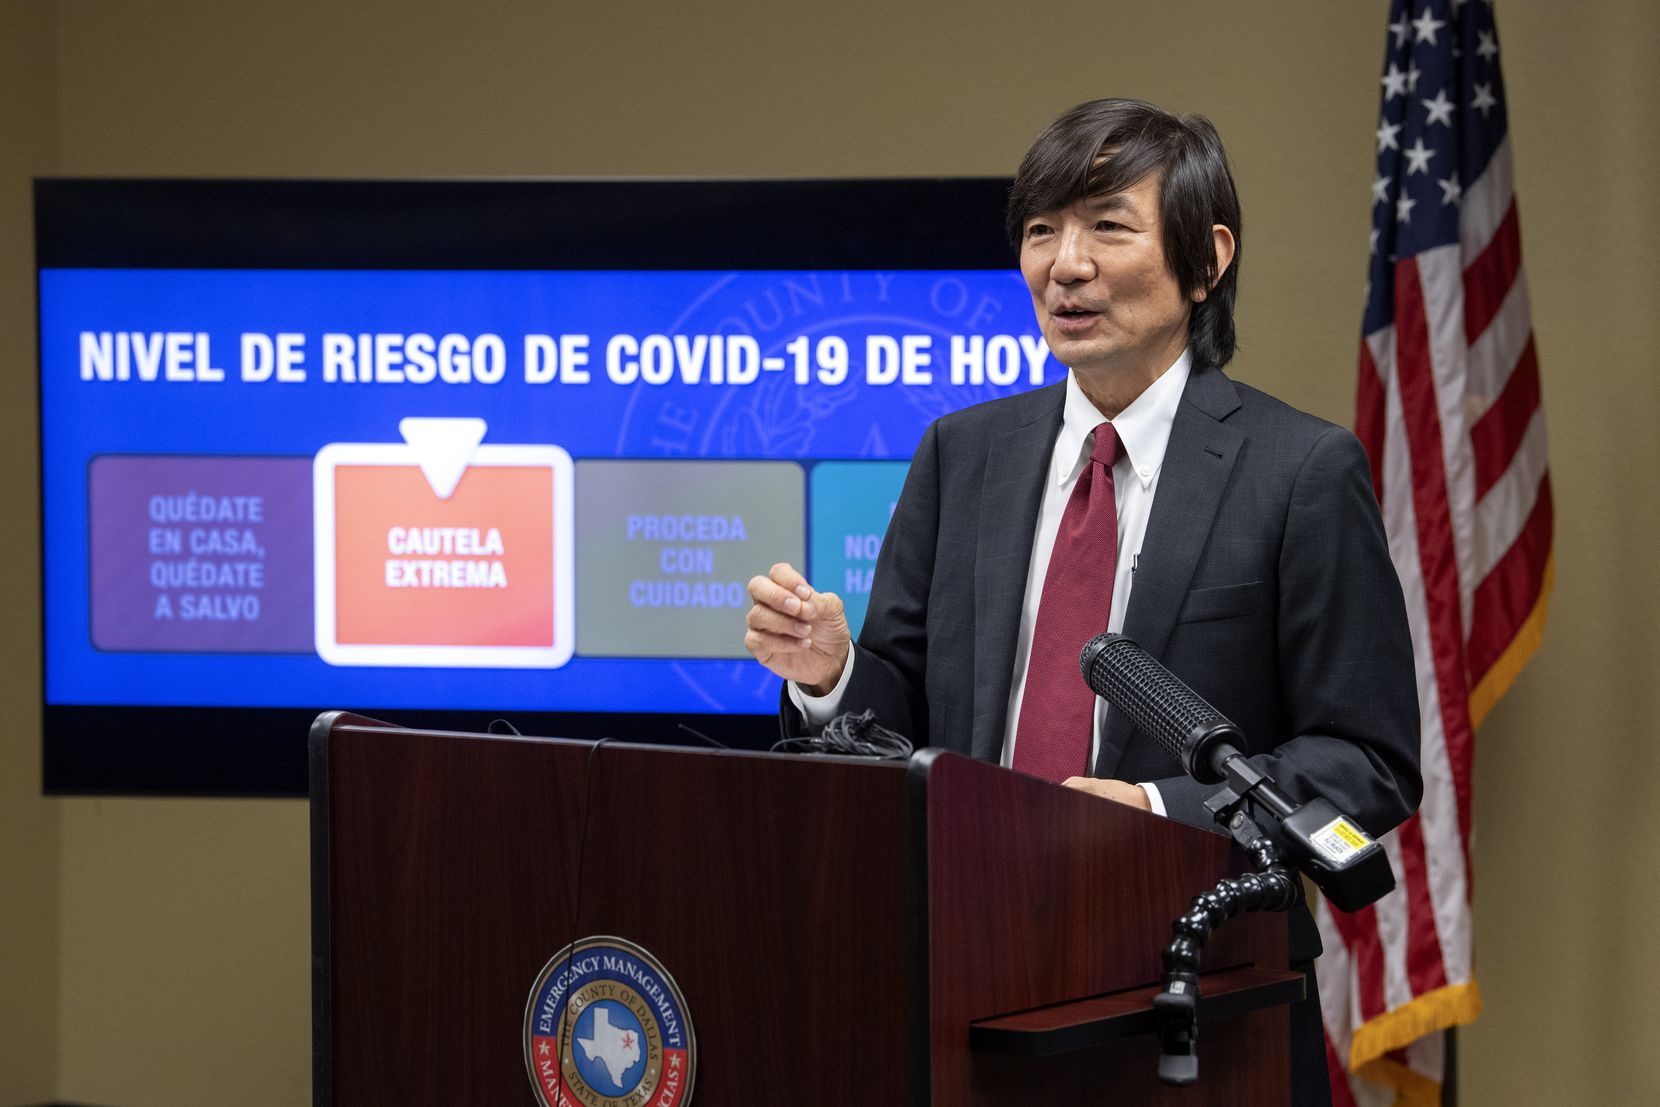 Dr. Philip Huang, Dallas County Health and Human Services director, discusses the county's decision to lower the COVID-19 risk level from red to orange during a news conference.